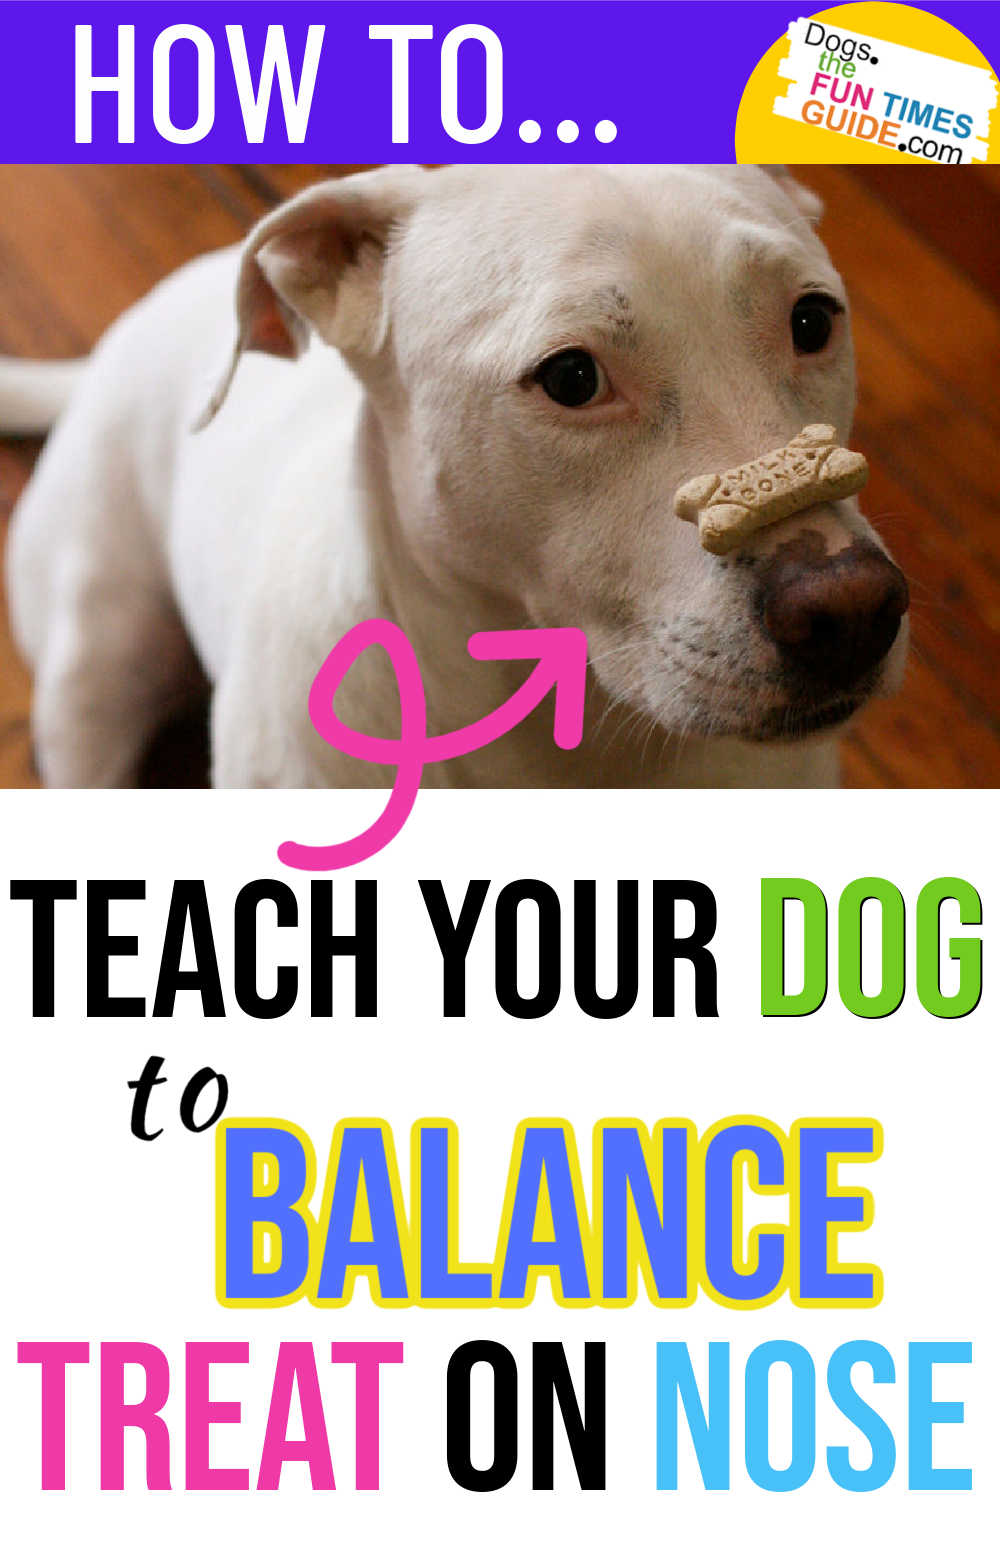 How To Teach Your Dog To Balance A Treat On Their Nose (All Of My Dogs Can Do This Trick!)